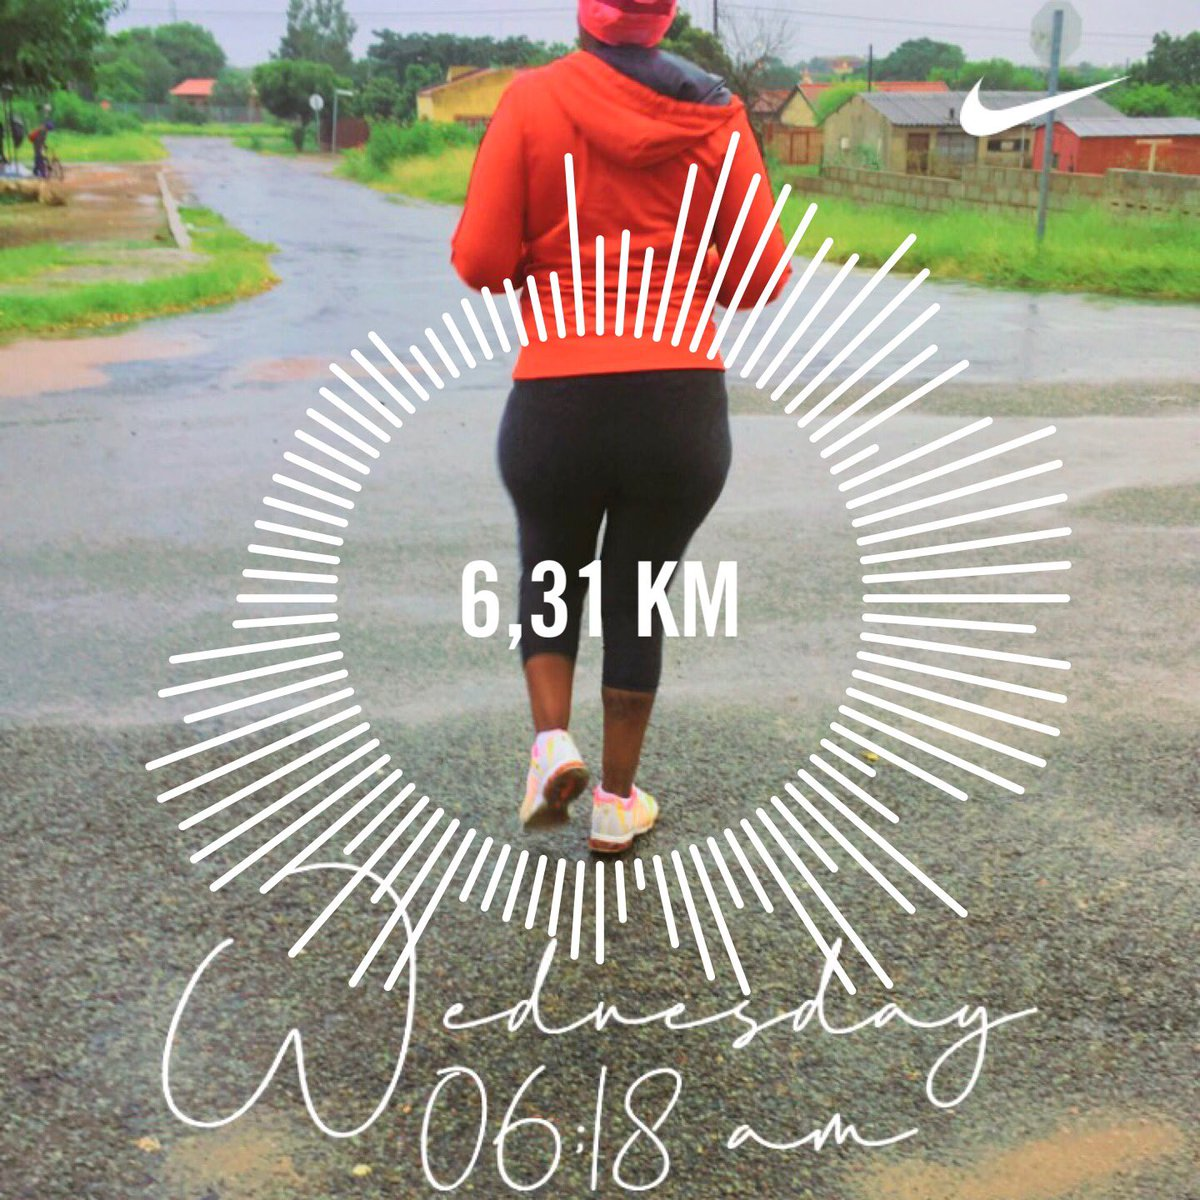 #Day18 #RunningWithTumiSole #FetchingYourBody2021  when it's pouring rain 🌧 and you bowling through the wet, theres satisfaction that you out there and others aren't 🤪🤪  27•01•2021 06:31